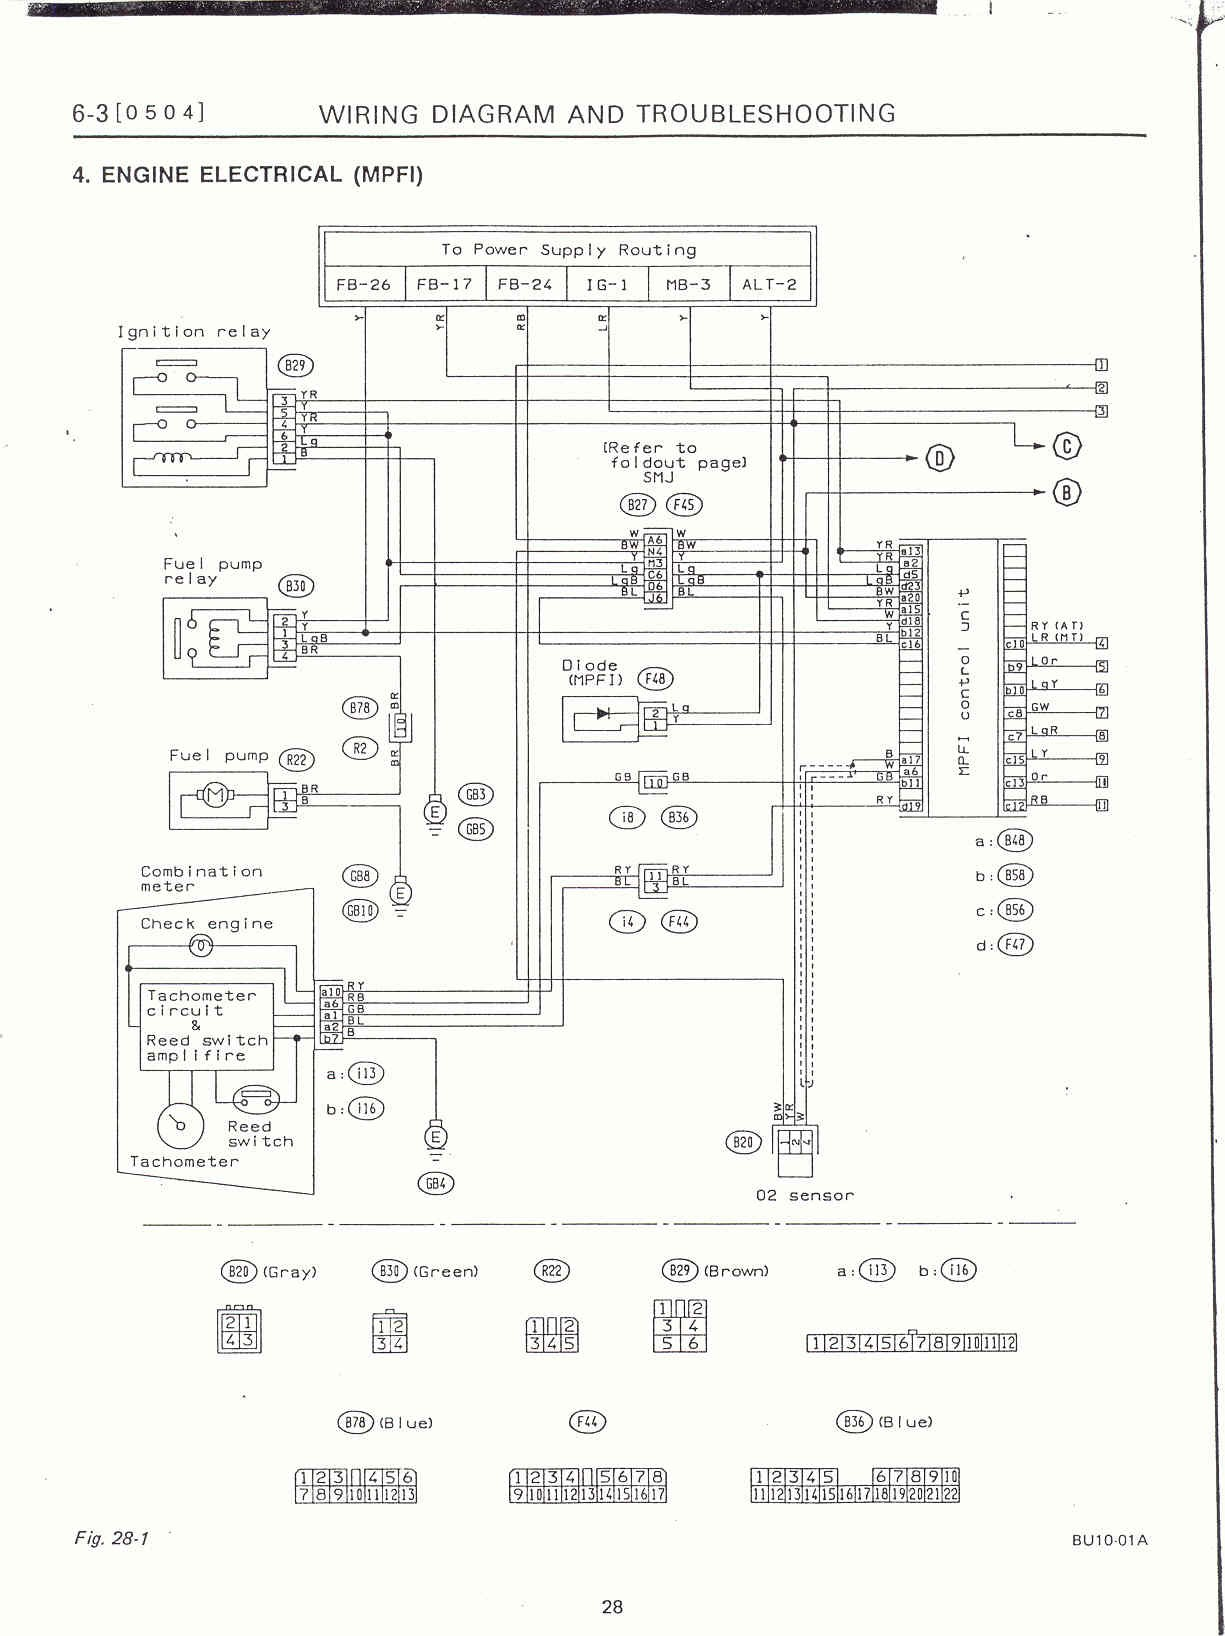 Related with 2000 subaru legacy wiring diagram